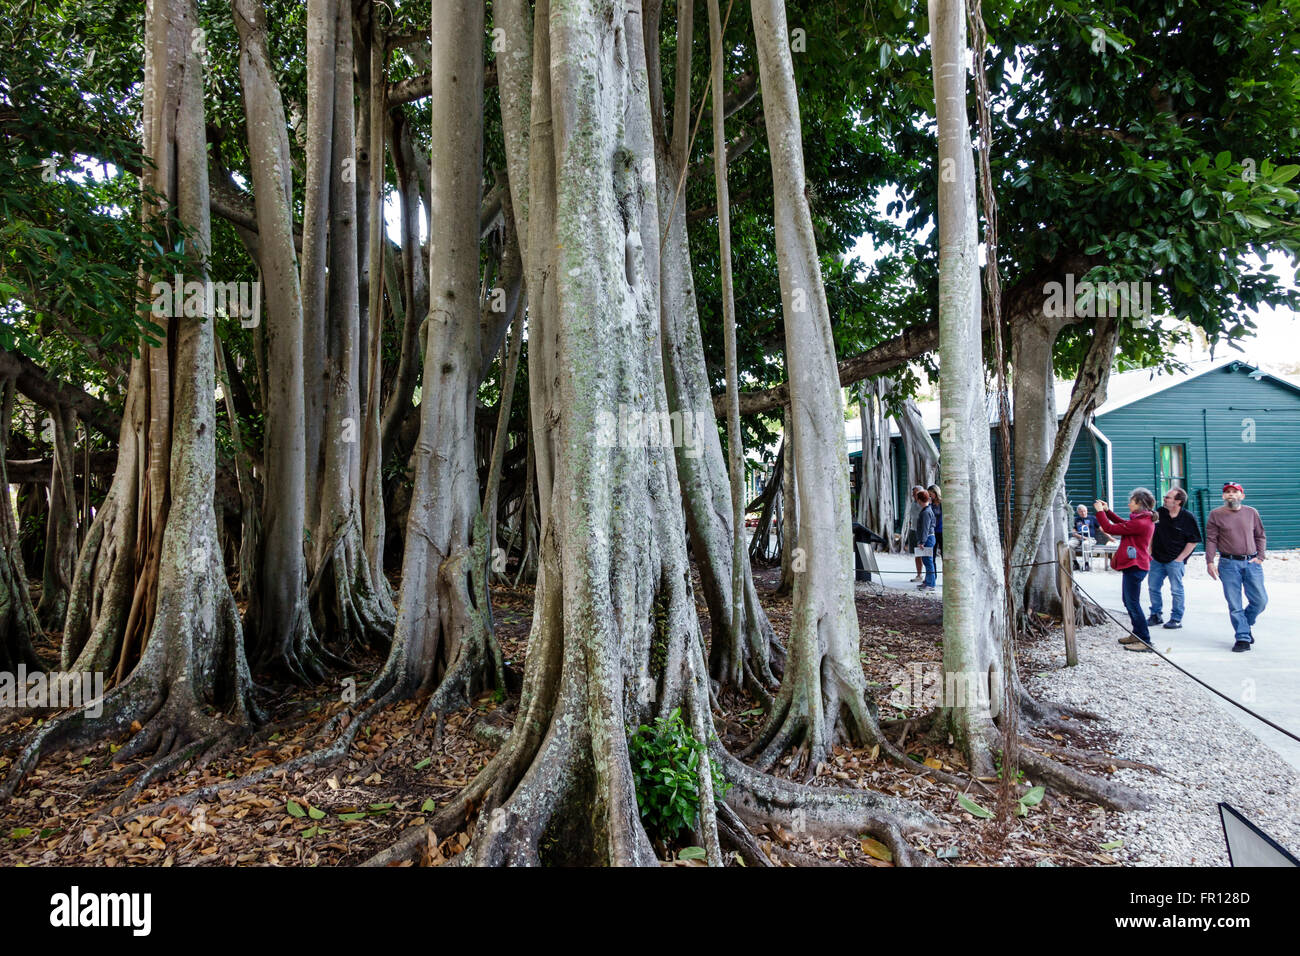 Florida FL Fort Ft. Myers Thomas Edison and Henry Ford Winter Estates historical museum giant banyan tree adventitious - Stock Image